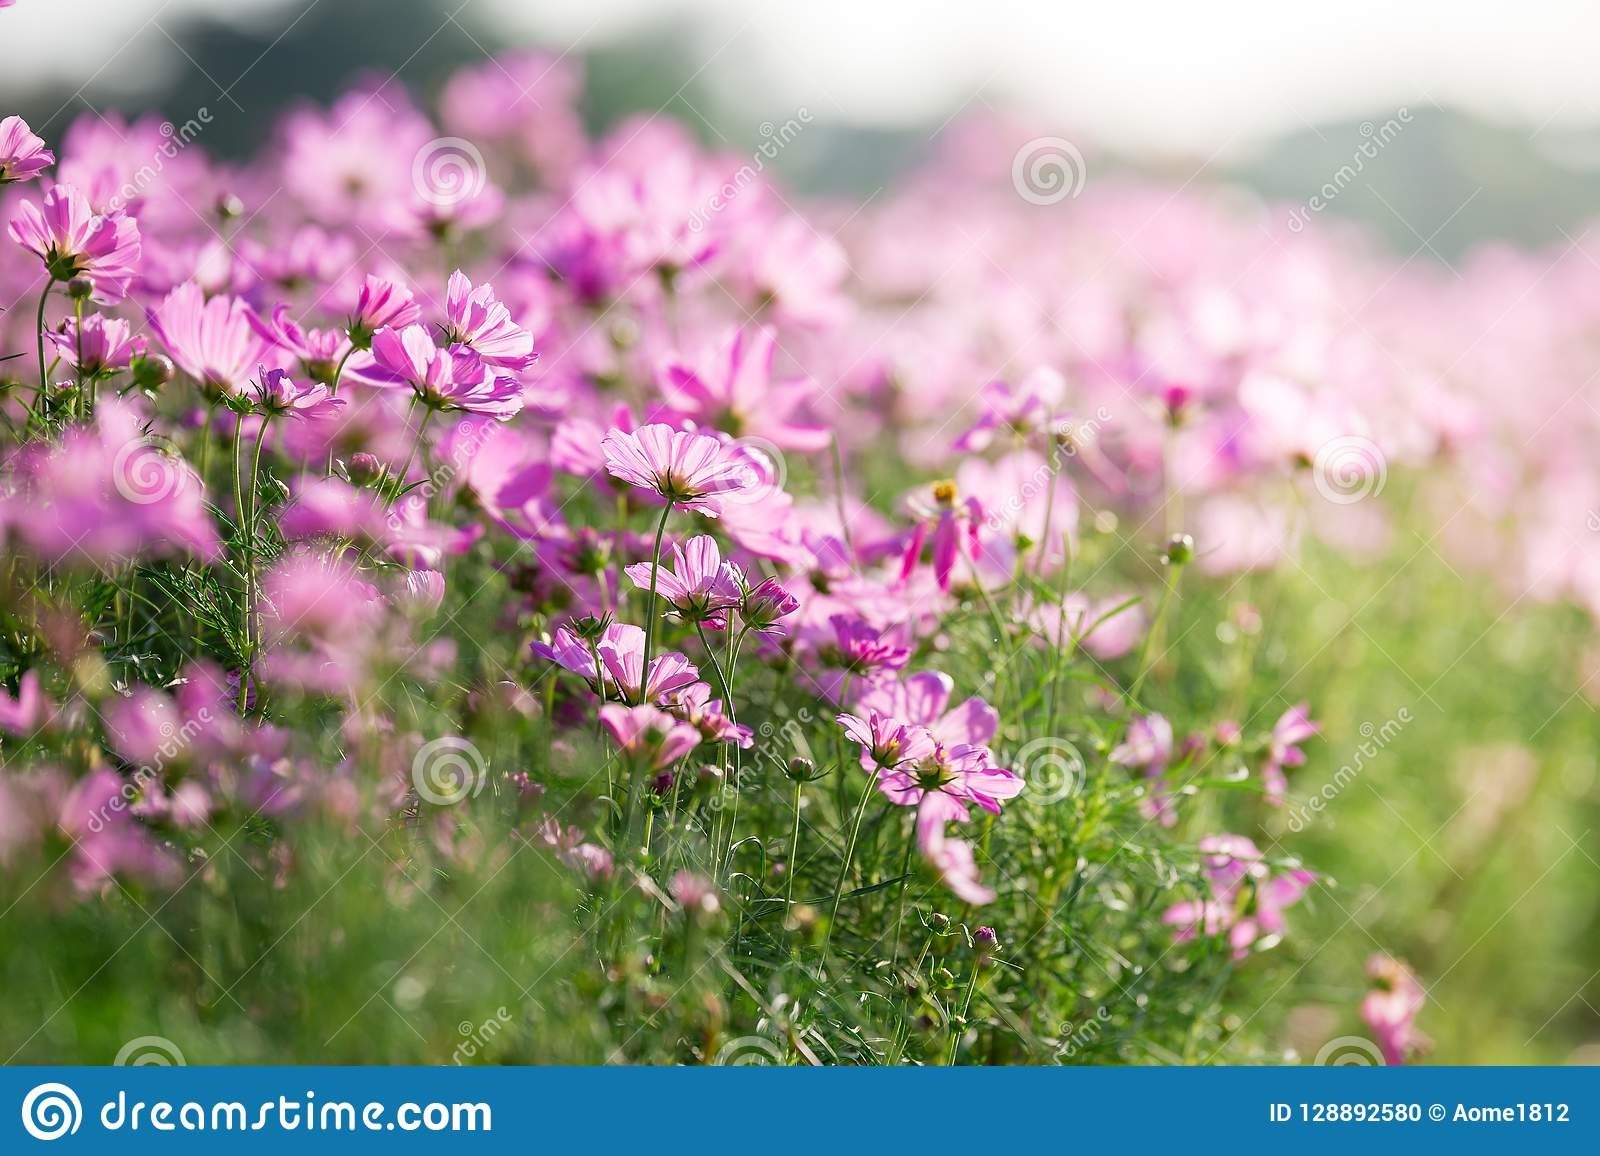 Pink Cosmos Flower Field With Sunlight Stock Photo Image Of Autumn